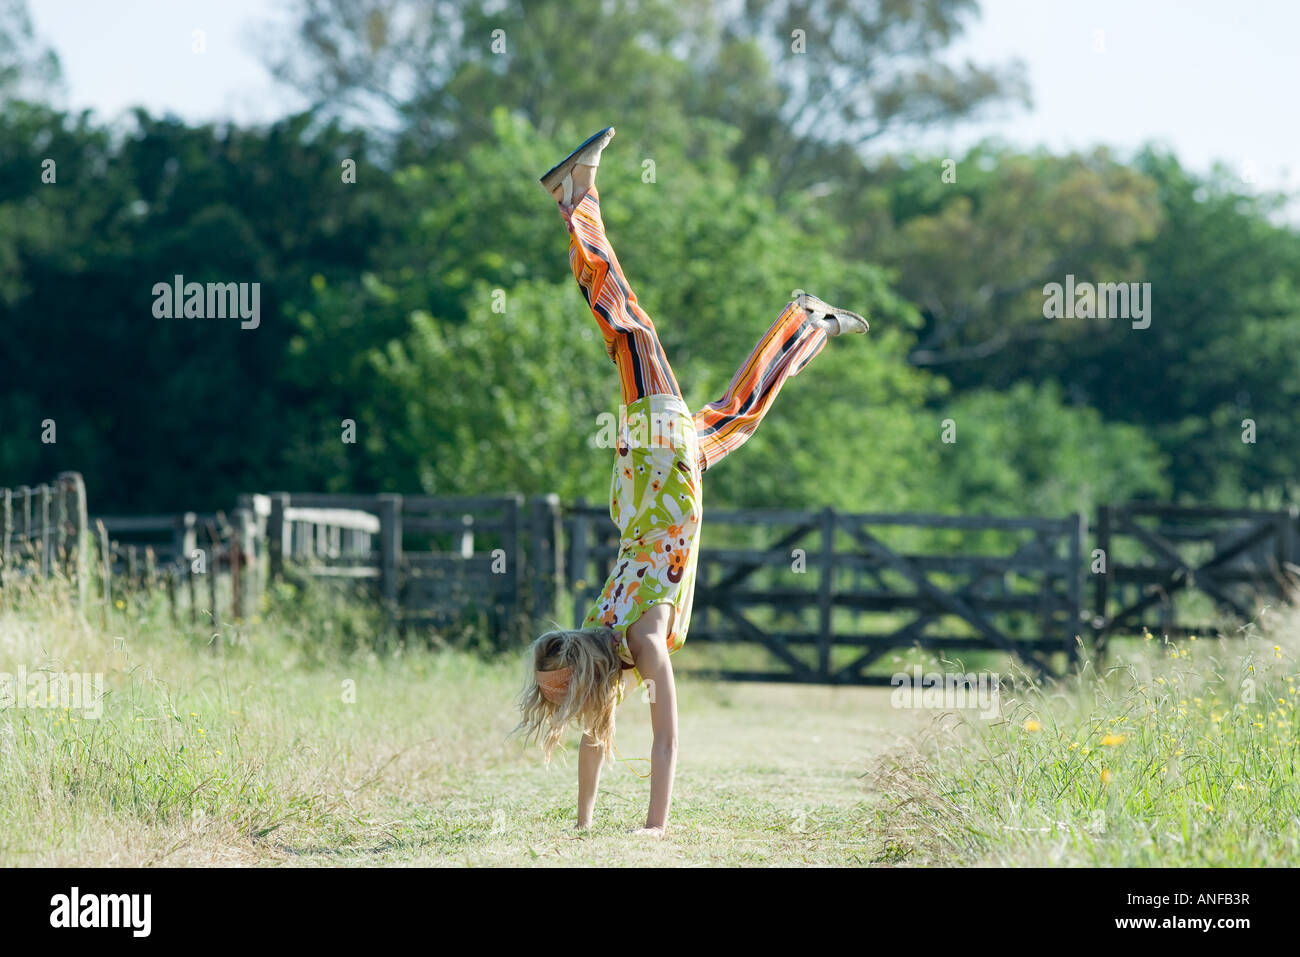 Young woman doing handstand in rural field - Stock Image